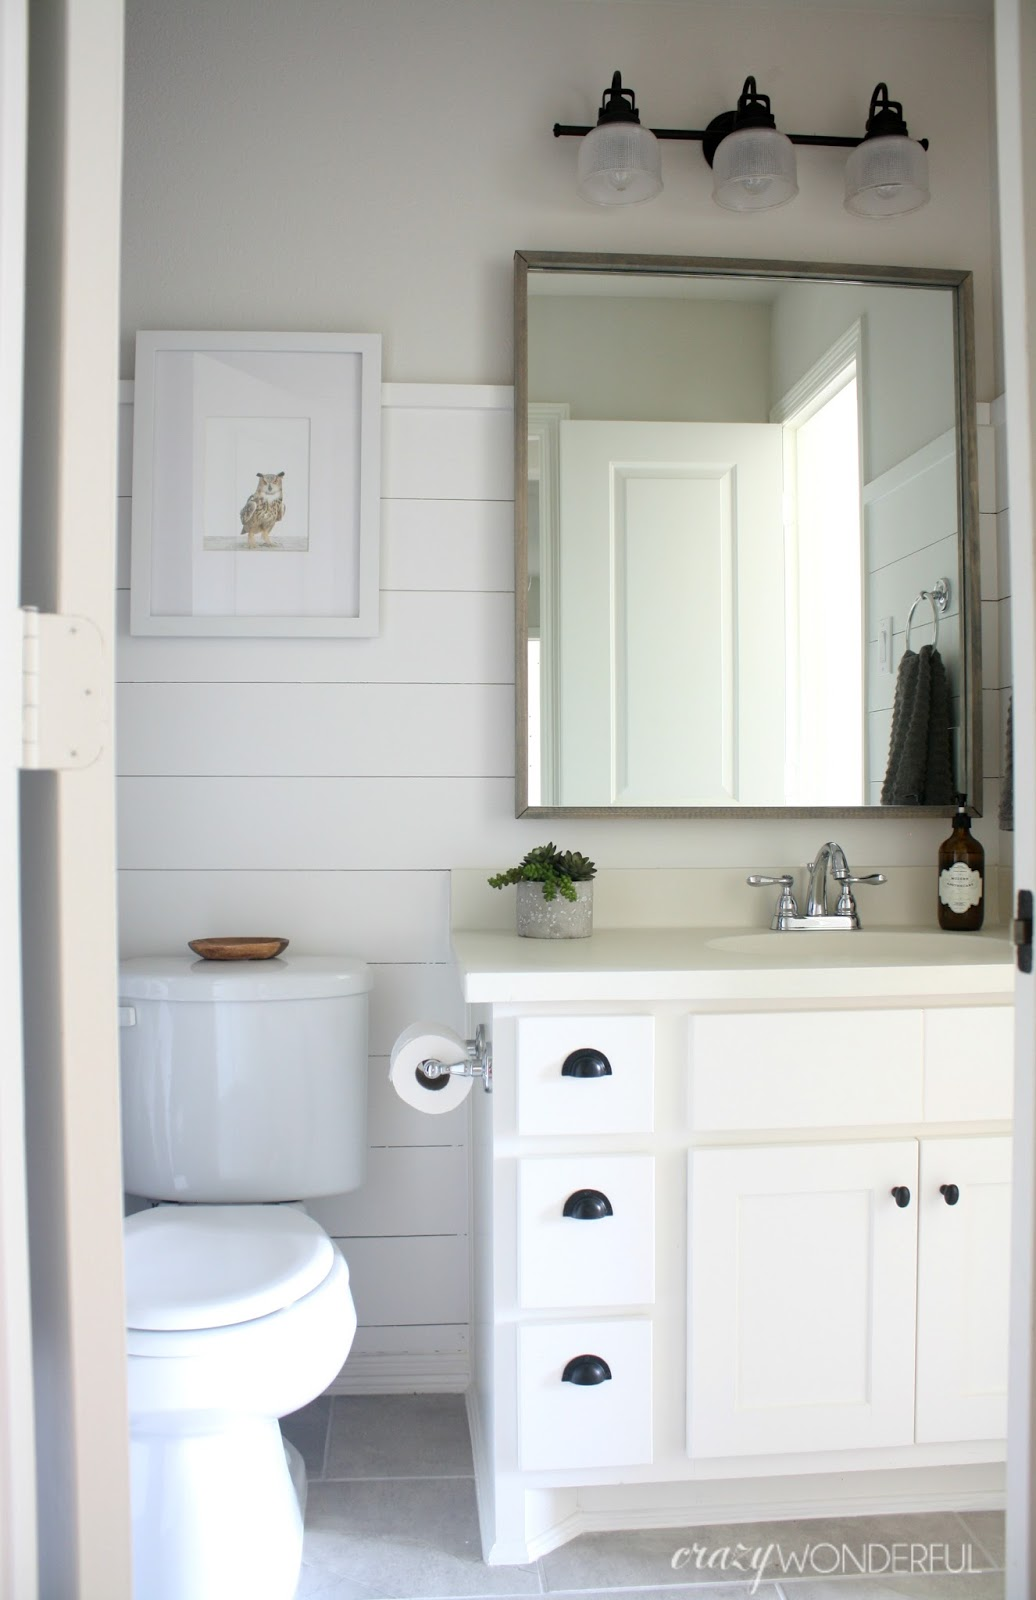 shiplap boy's bathroom reveal - Crazy Wonderful